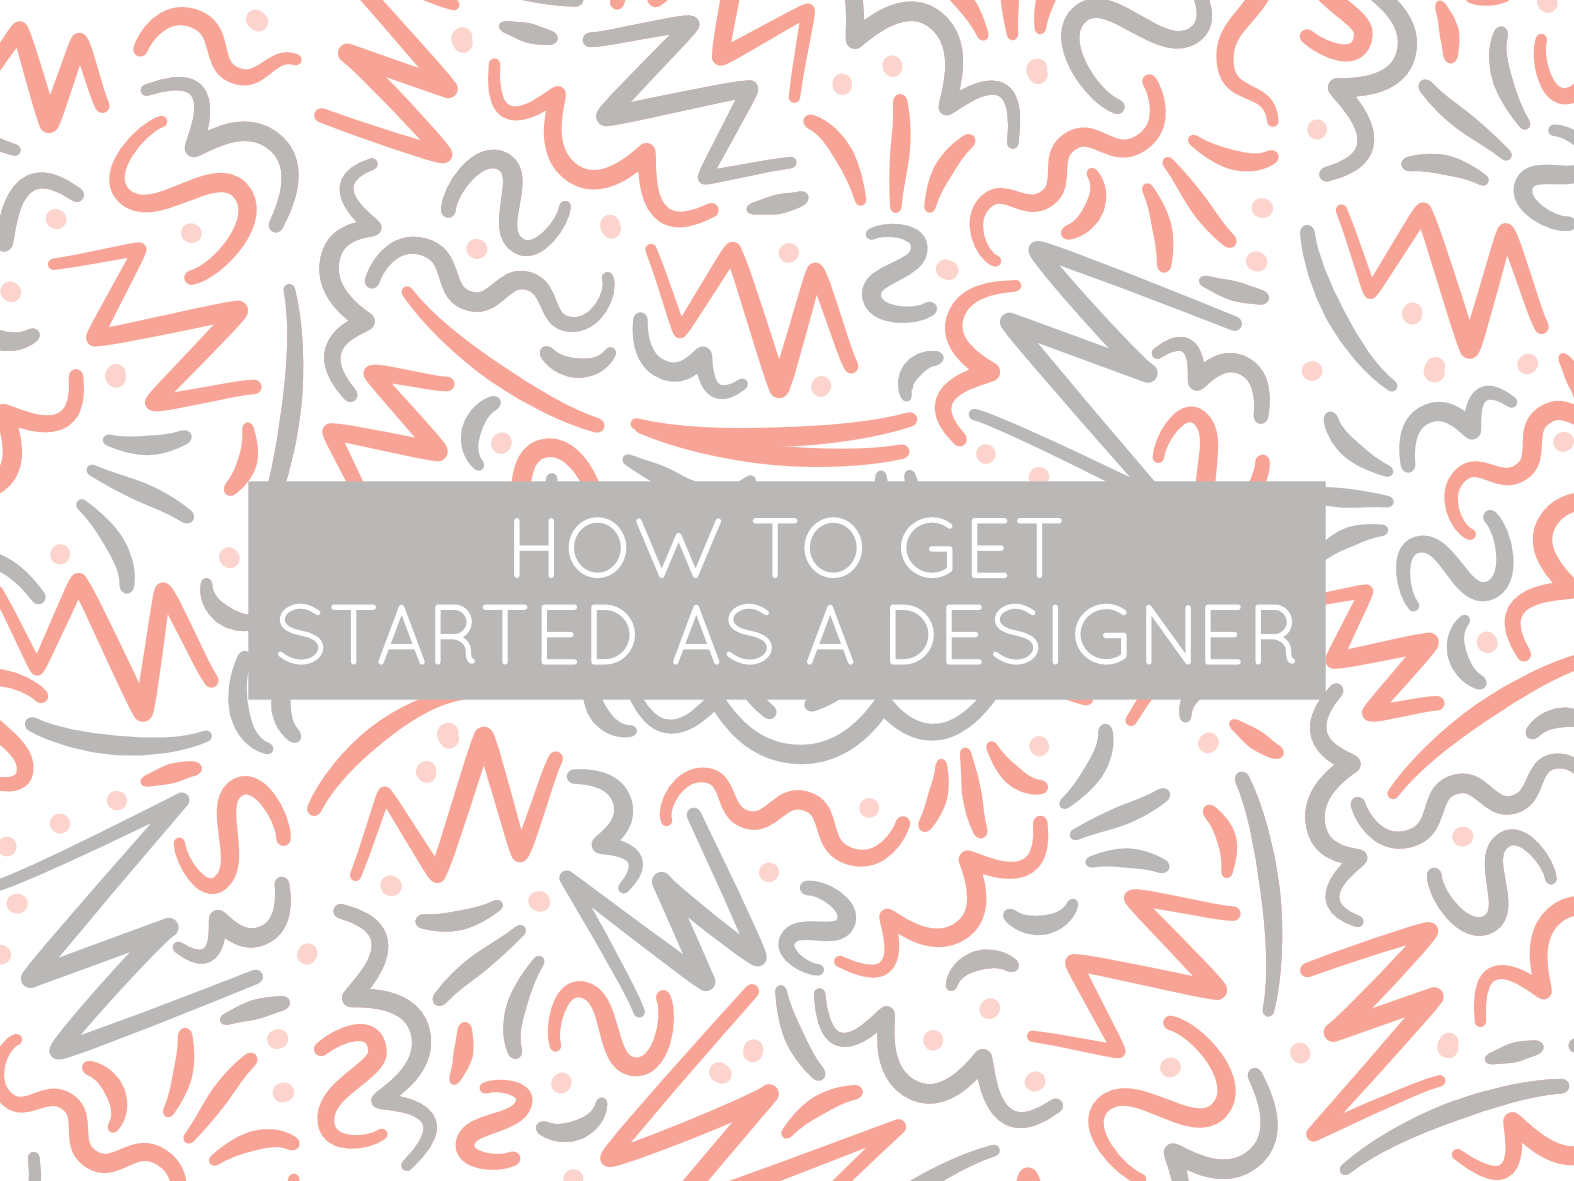 how to get started as a designer